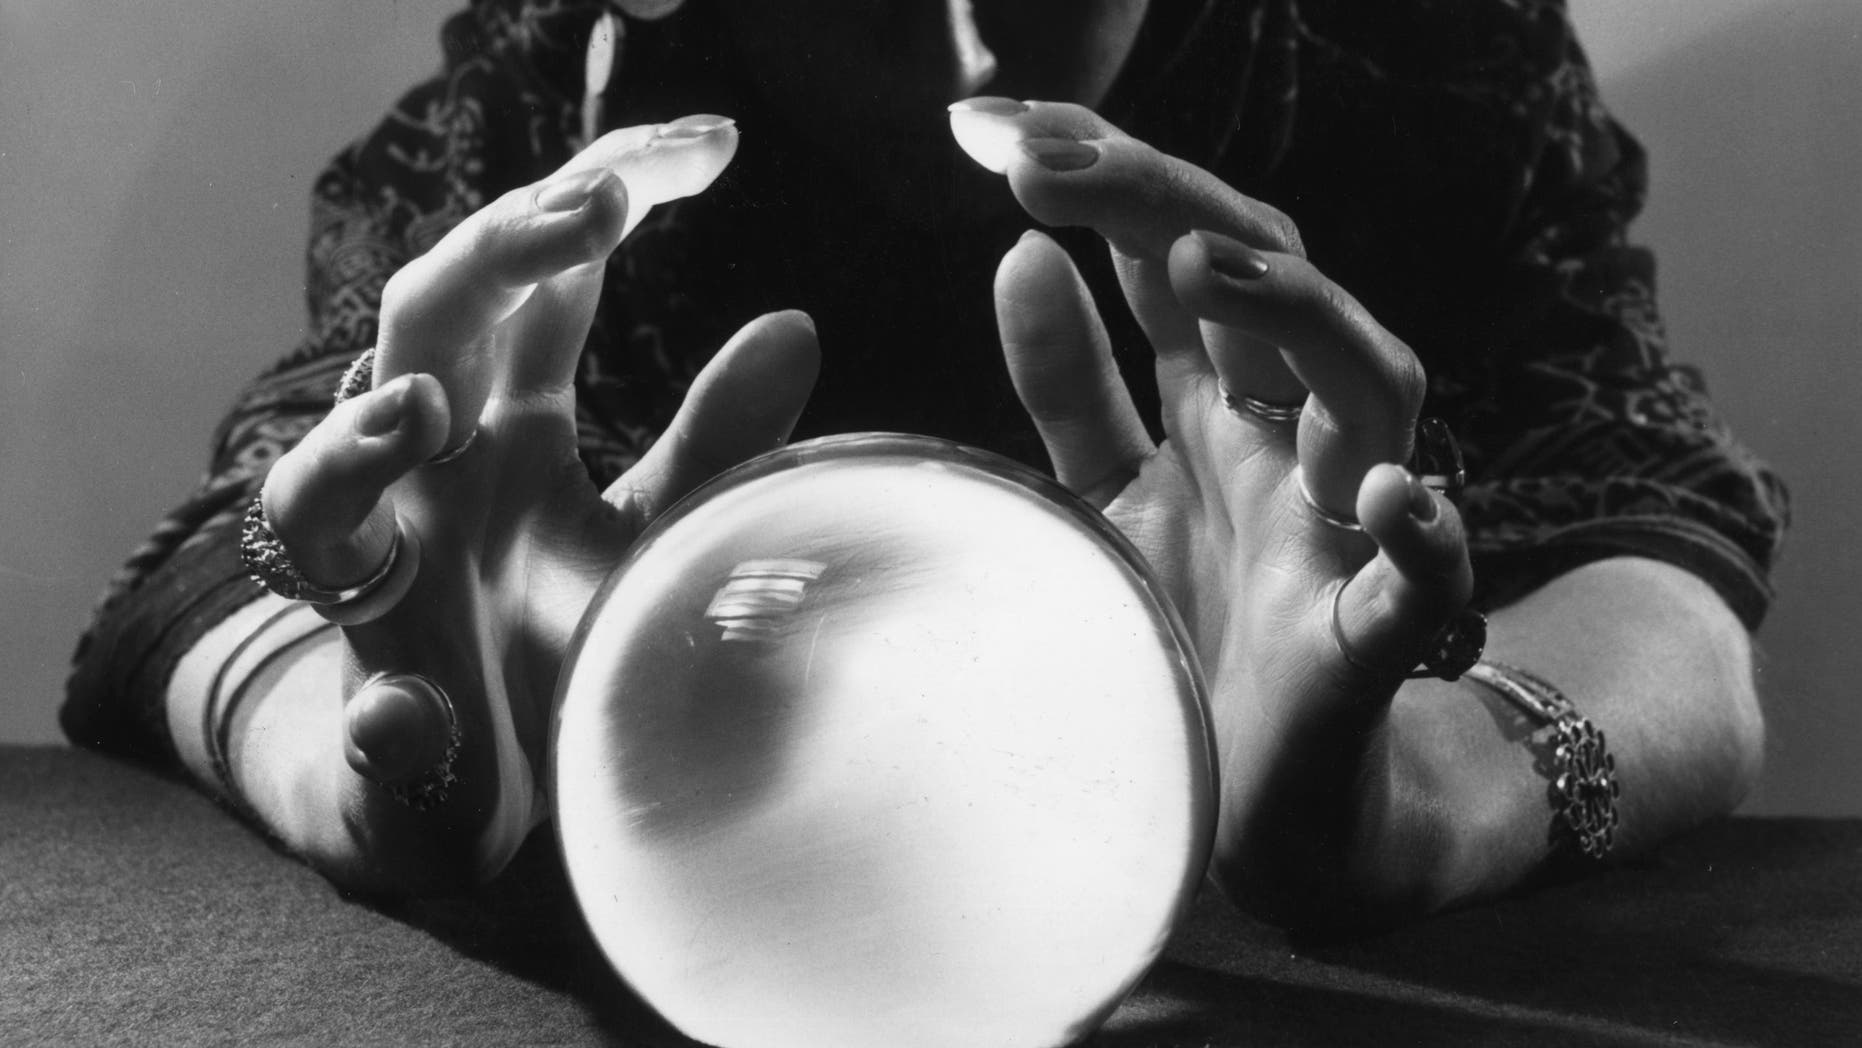 A gypsy fortune-teller gazing into her crystal ball.